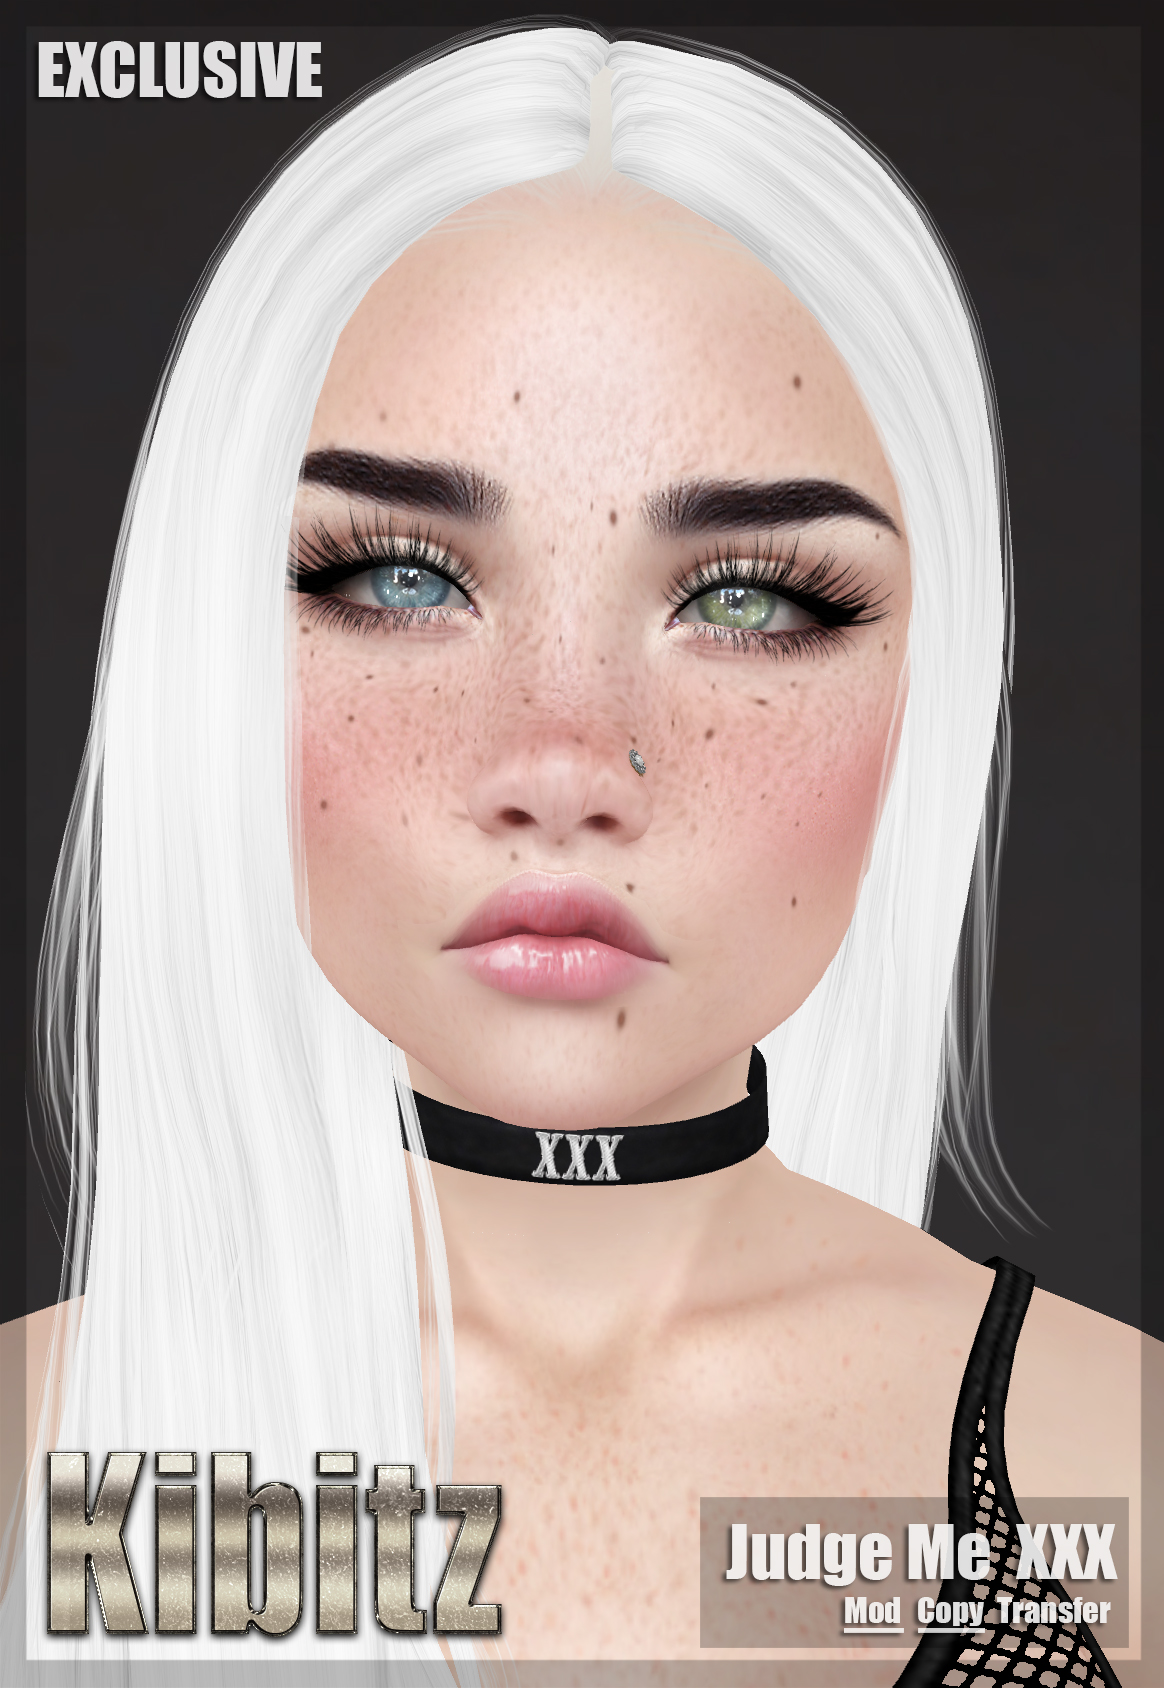 Judge me choker  XXX.jpg